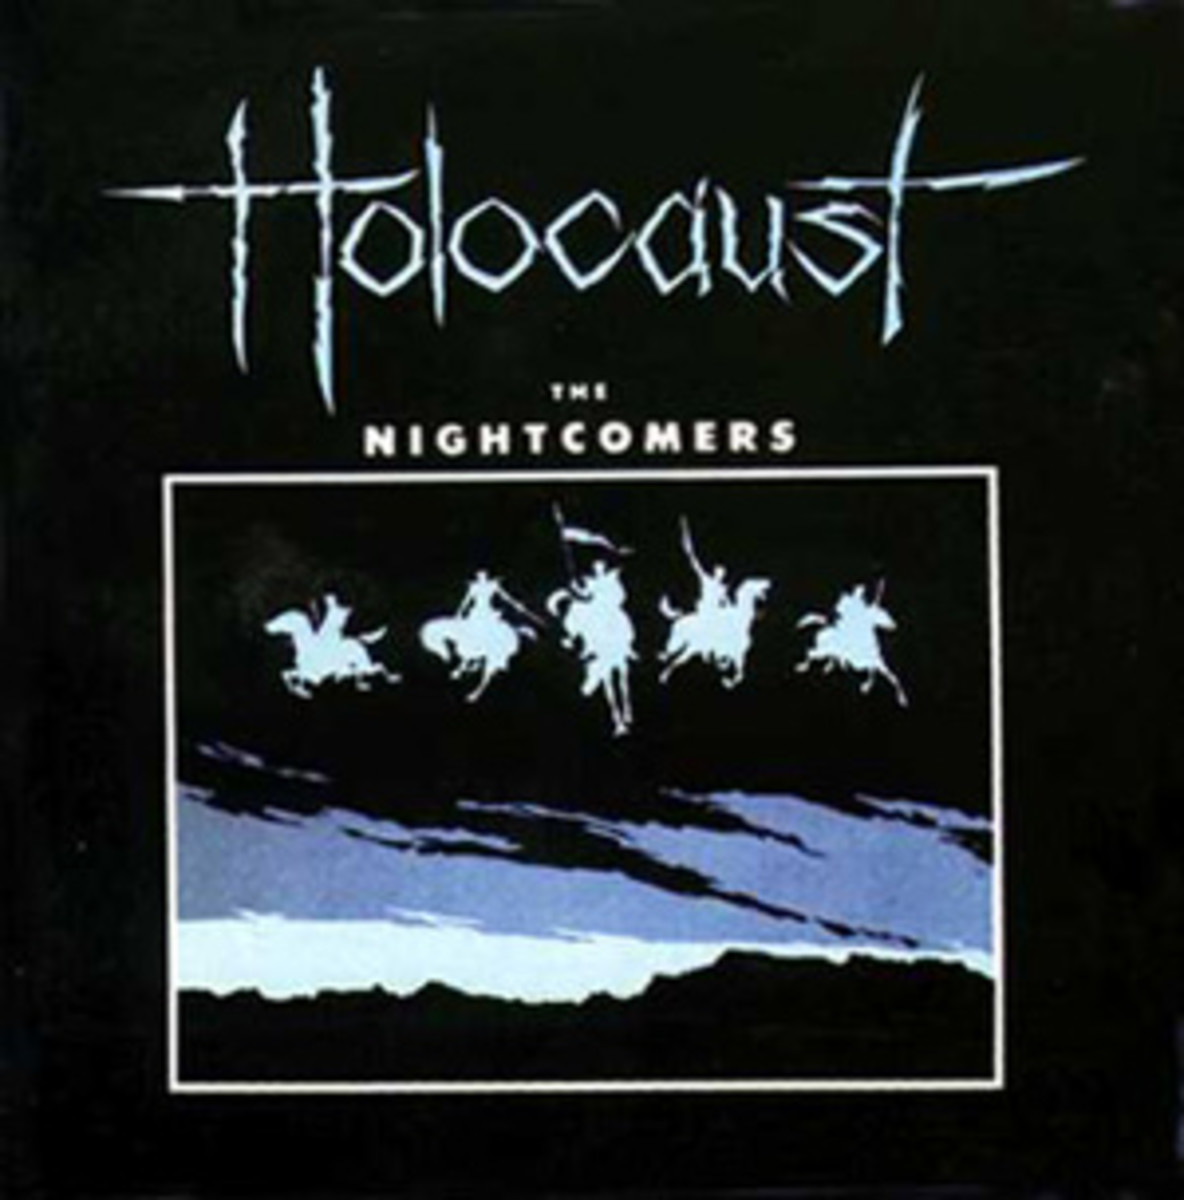 Holocaust_Nightcomers